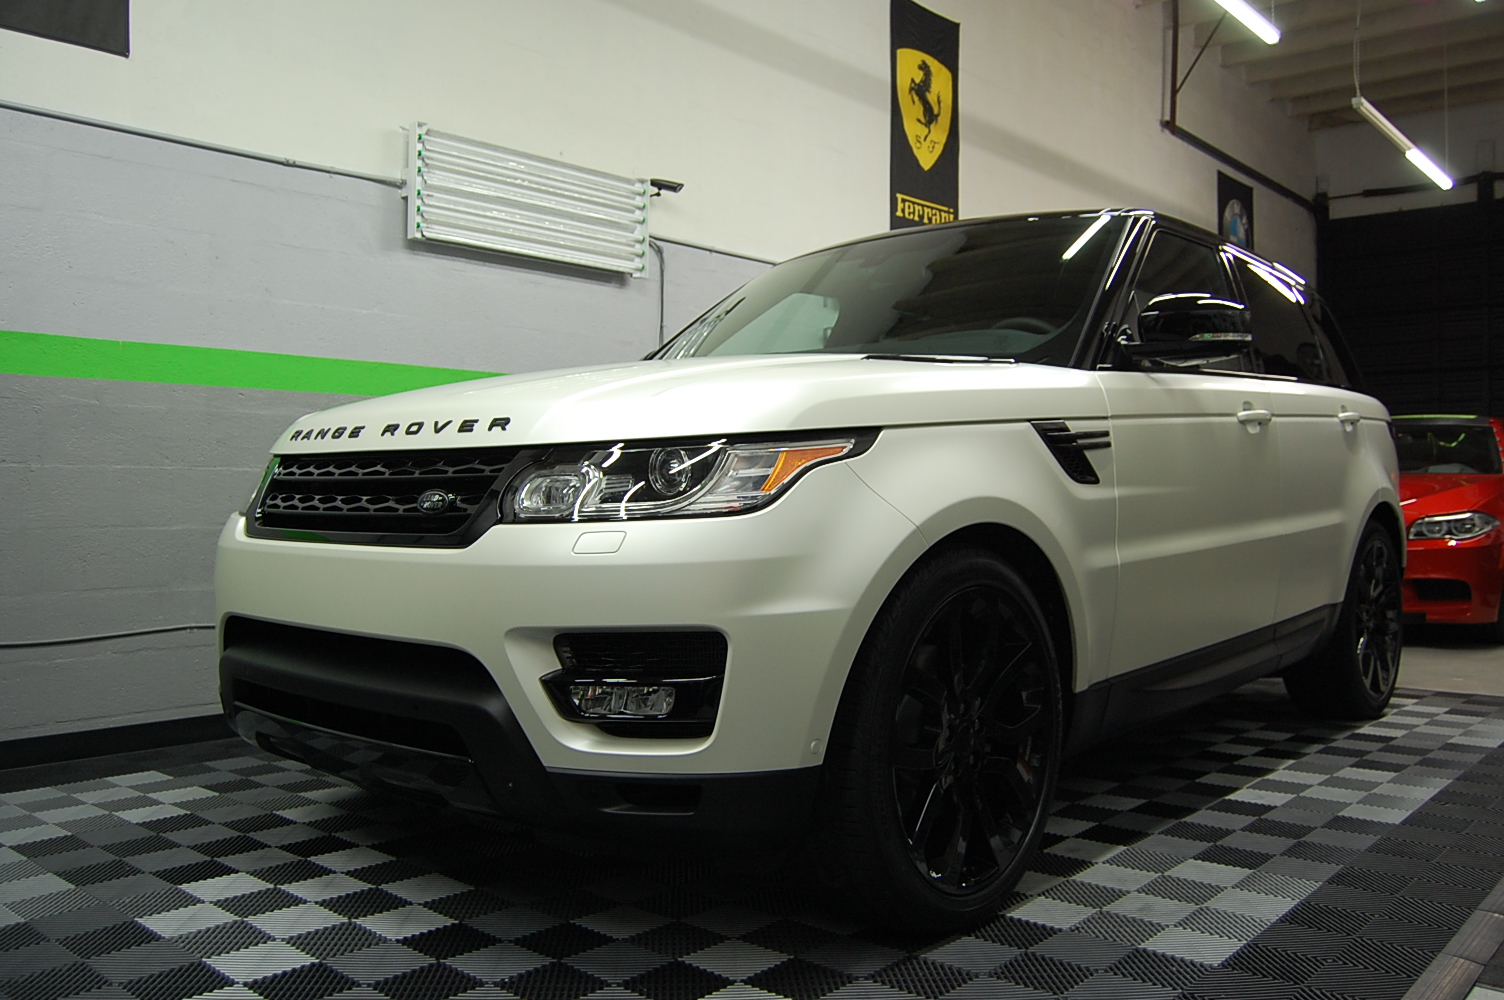 2014 Range Rover 3m Satin Pearl White Car Wrap Miami With